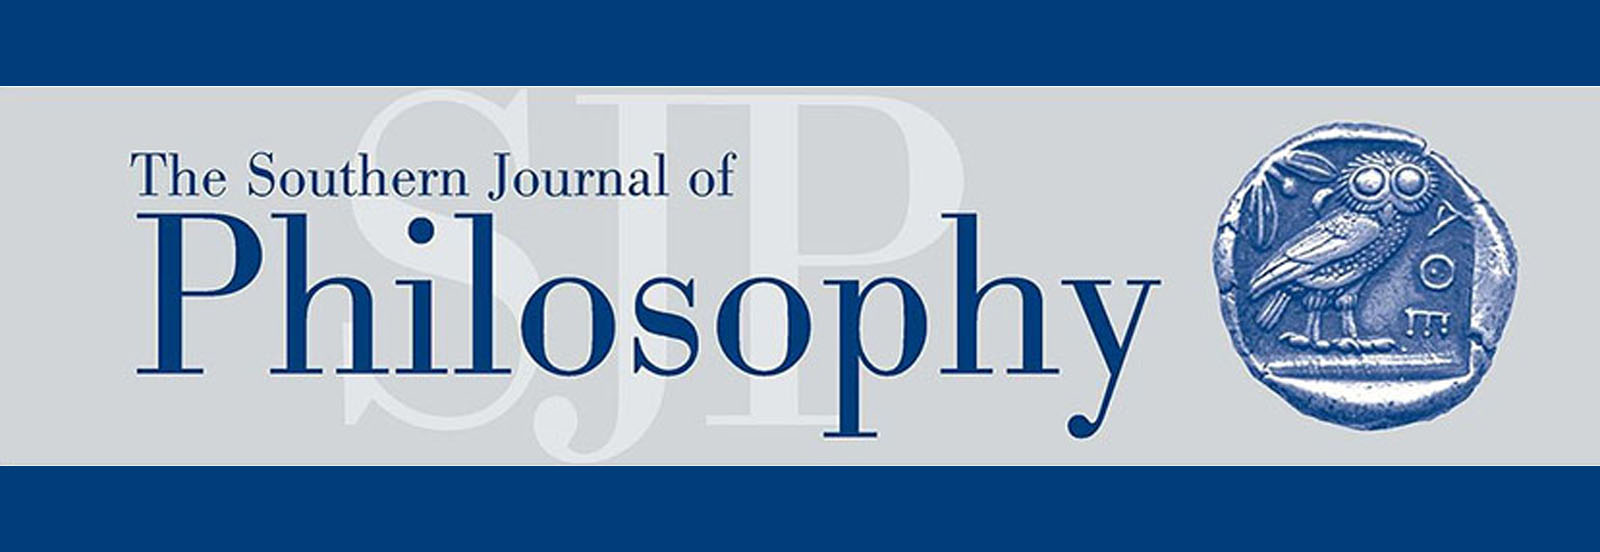 The Southern Journal of Philosophy - A forum for the expression of philosophical ideas written from all philosophical perspectives, including both the analytic and continental traditions, as well as the history of philosophy.